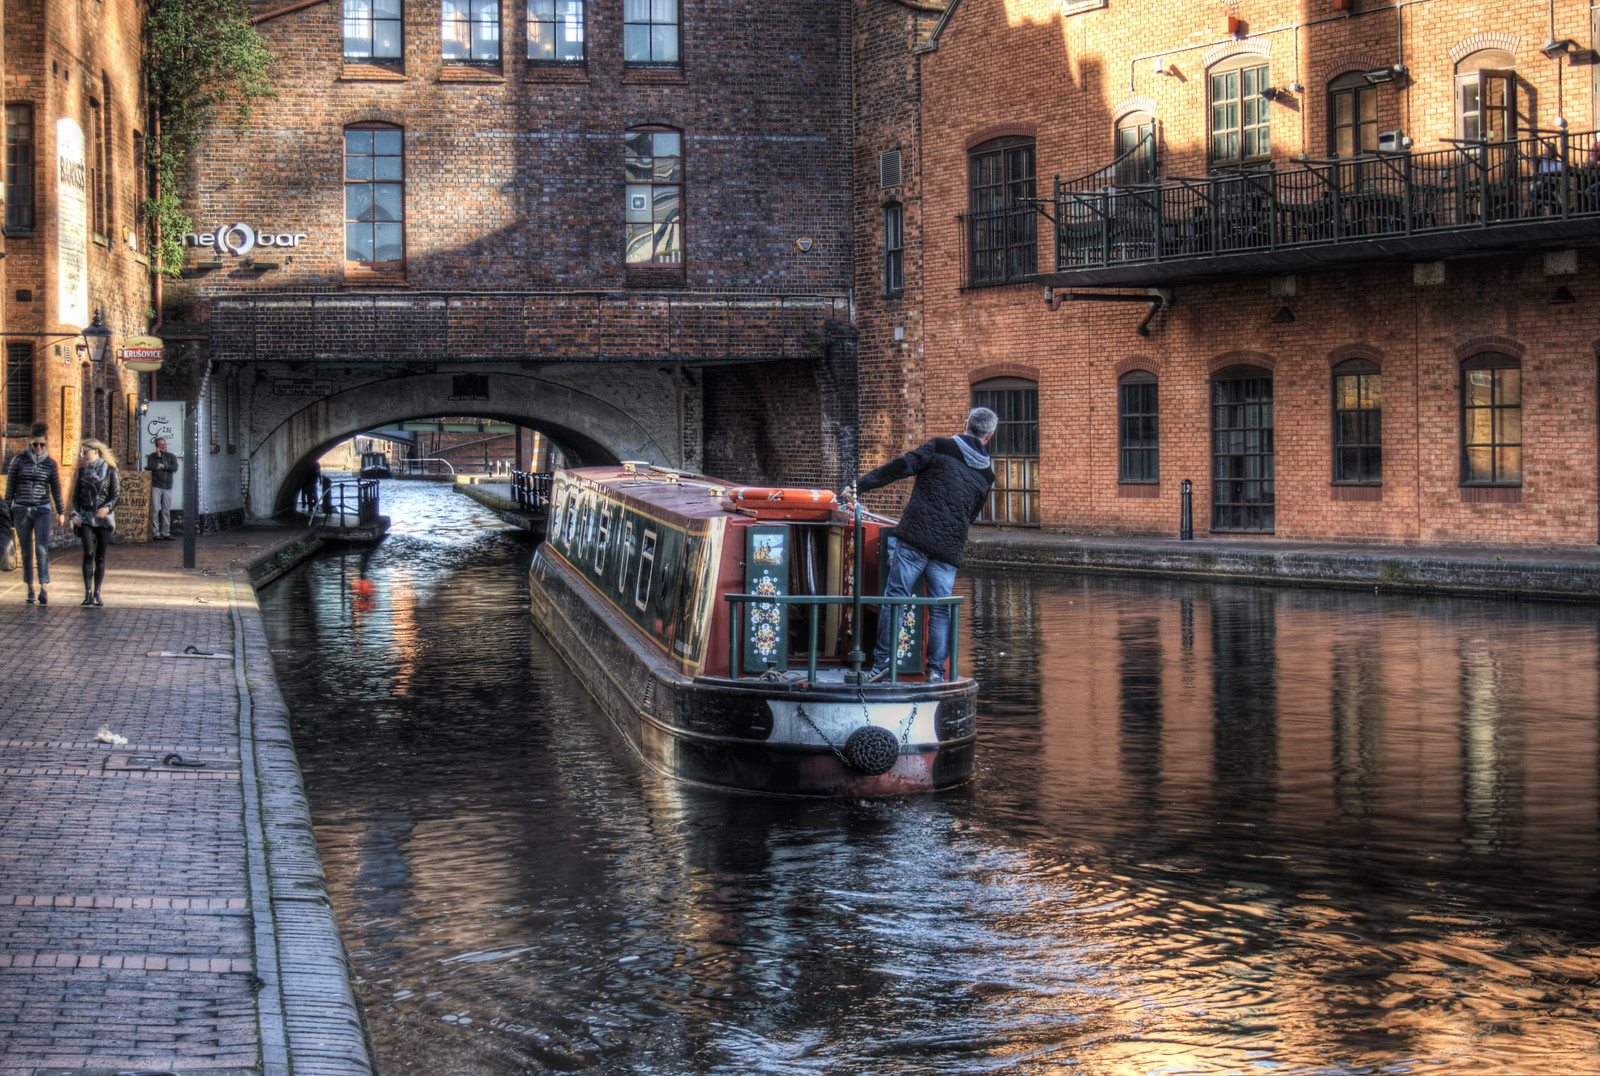 Narrowboat negotiating the Broad St. Tunnel, Birmingham. Credit Neil Howard, flickr